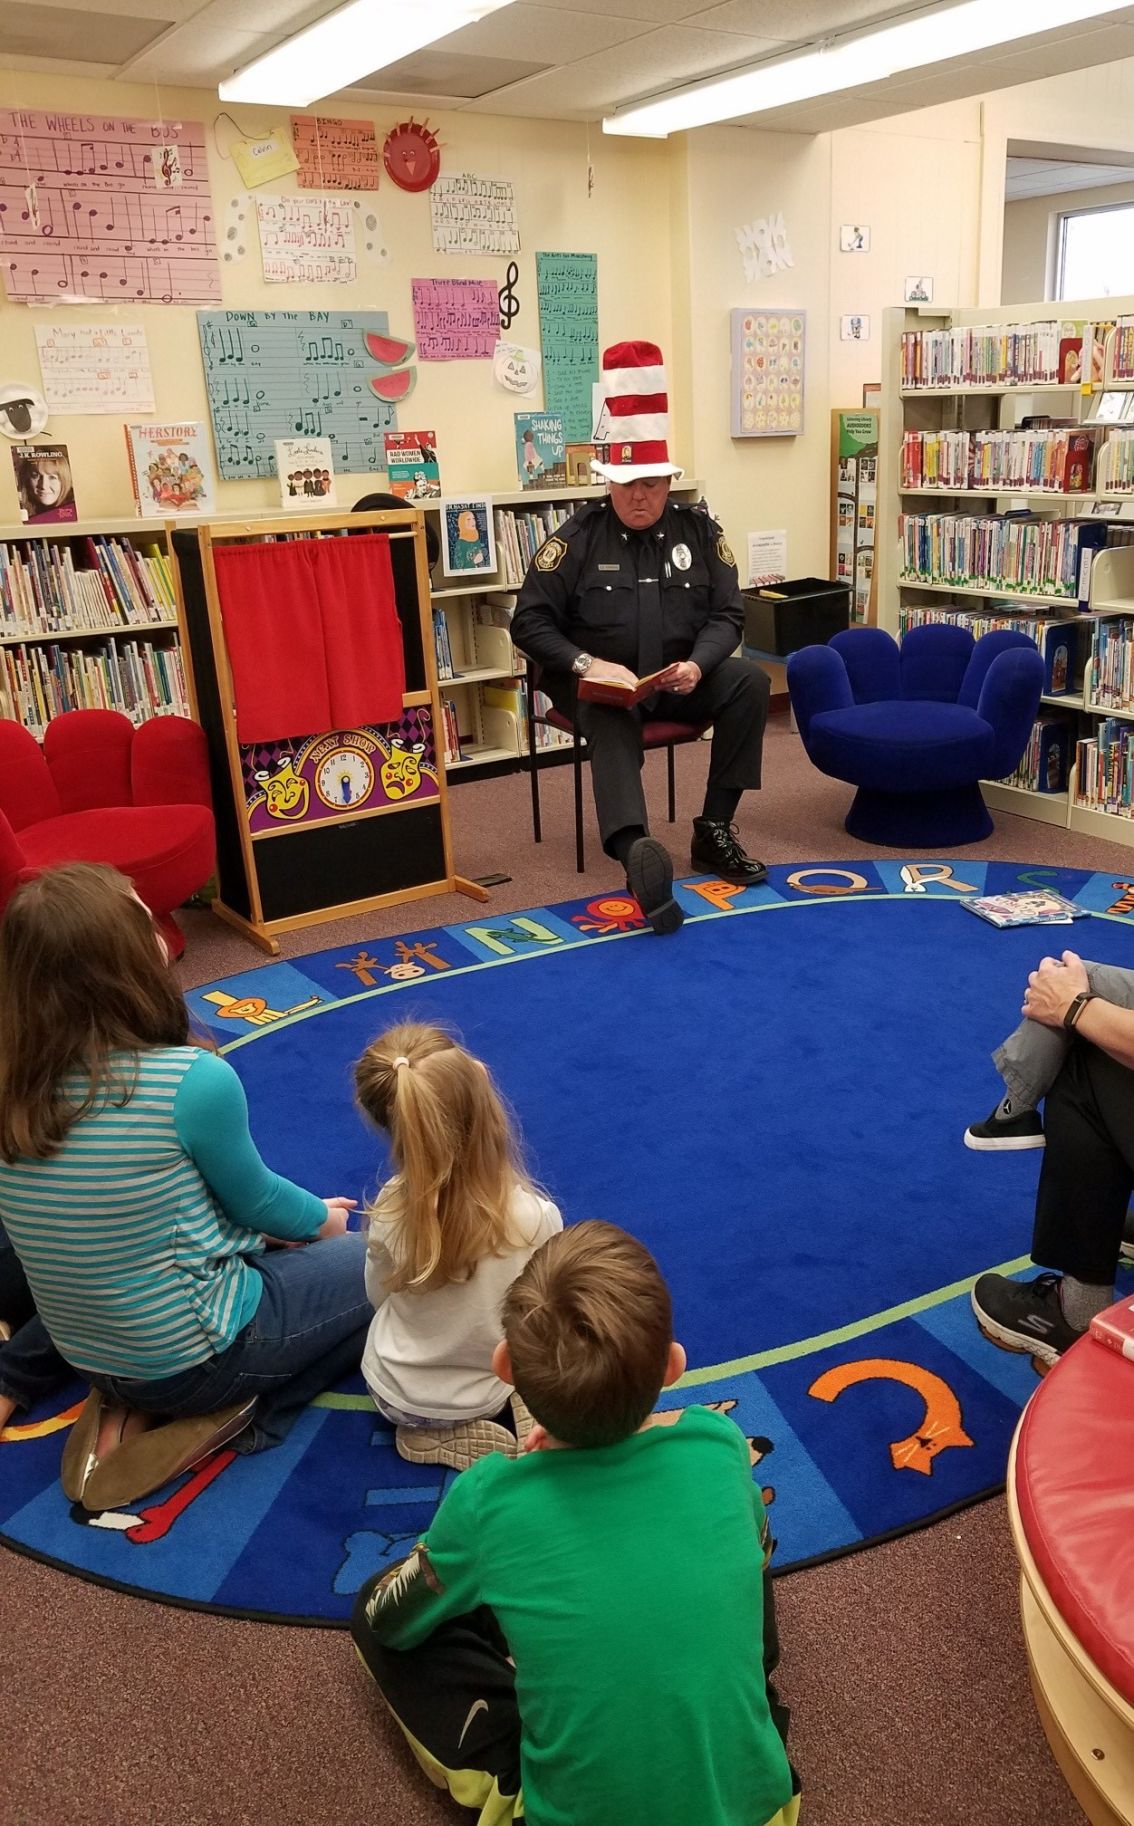 Police chief transforms into Cat in the Hat